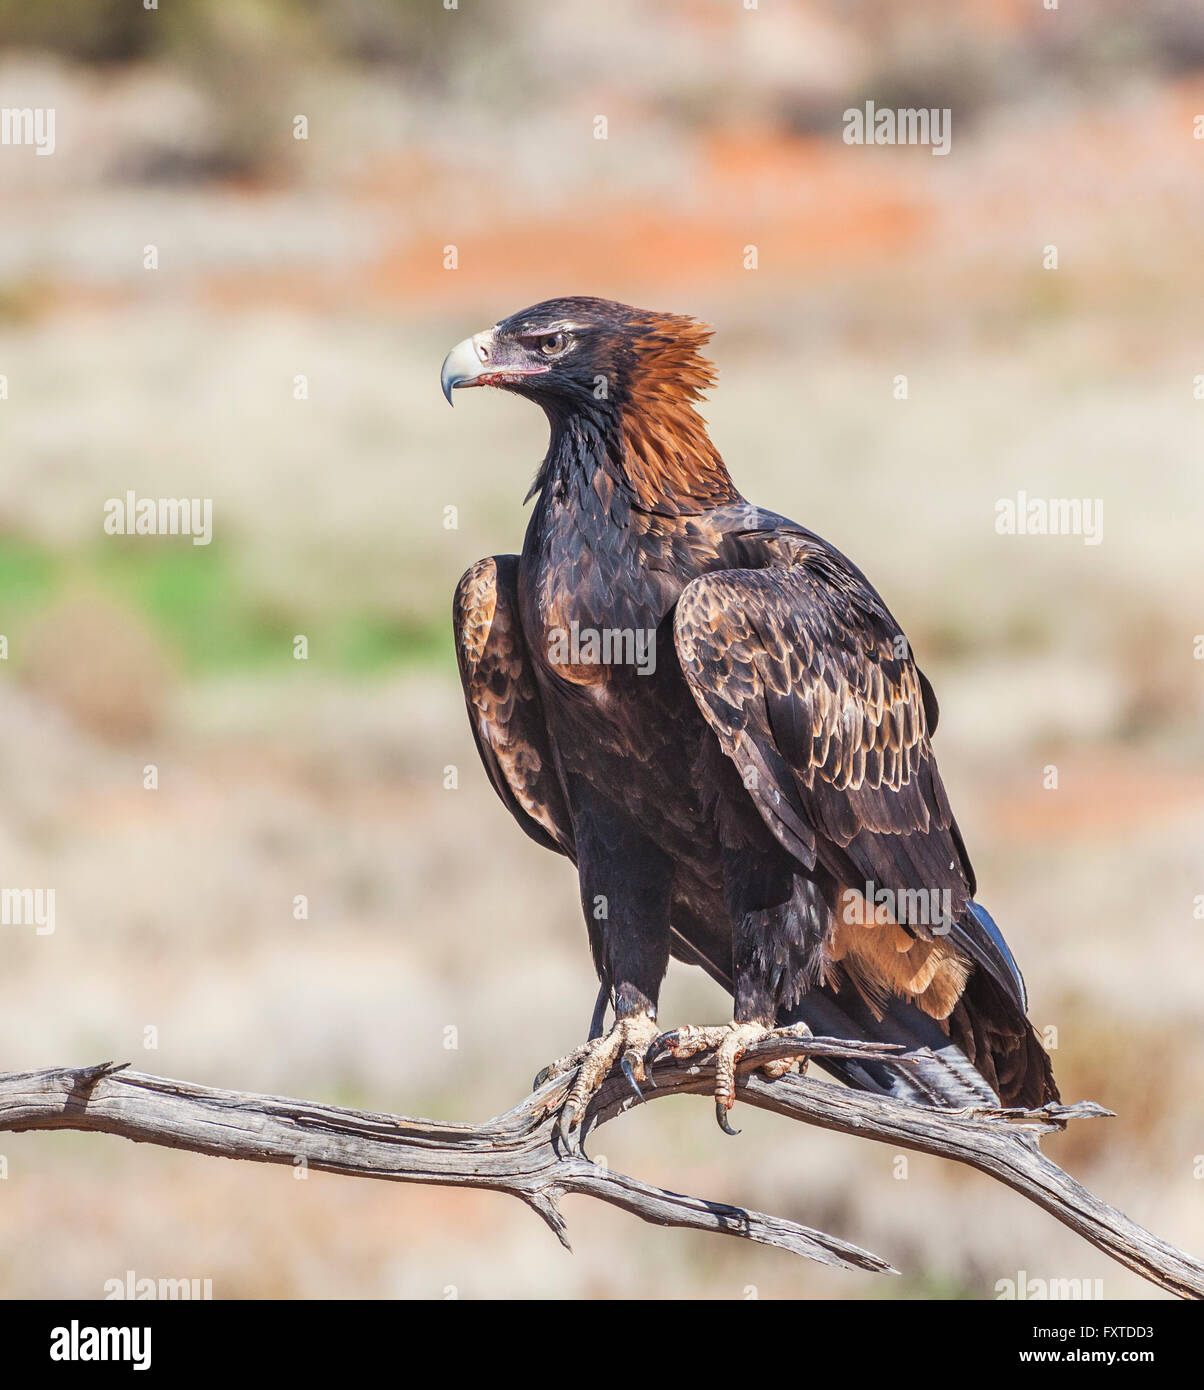 Wedge-tailed Eagle (Aquila audax) at Sturt National Park, far northwest New South Wales - Stock Image